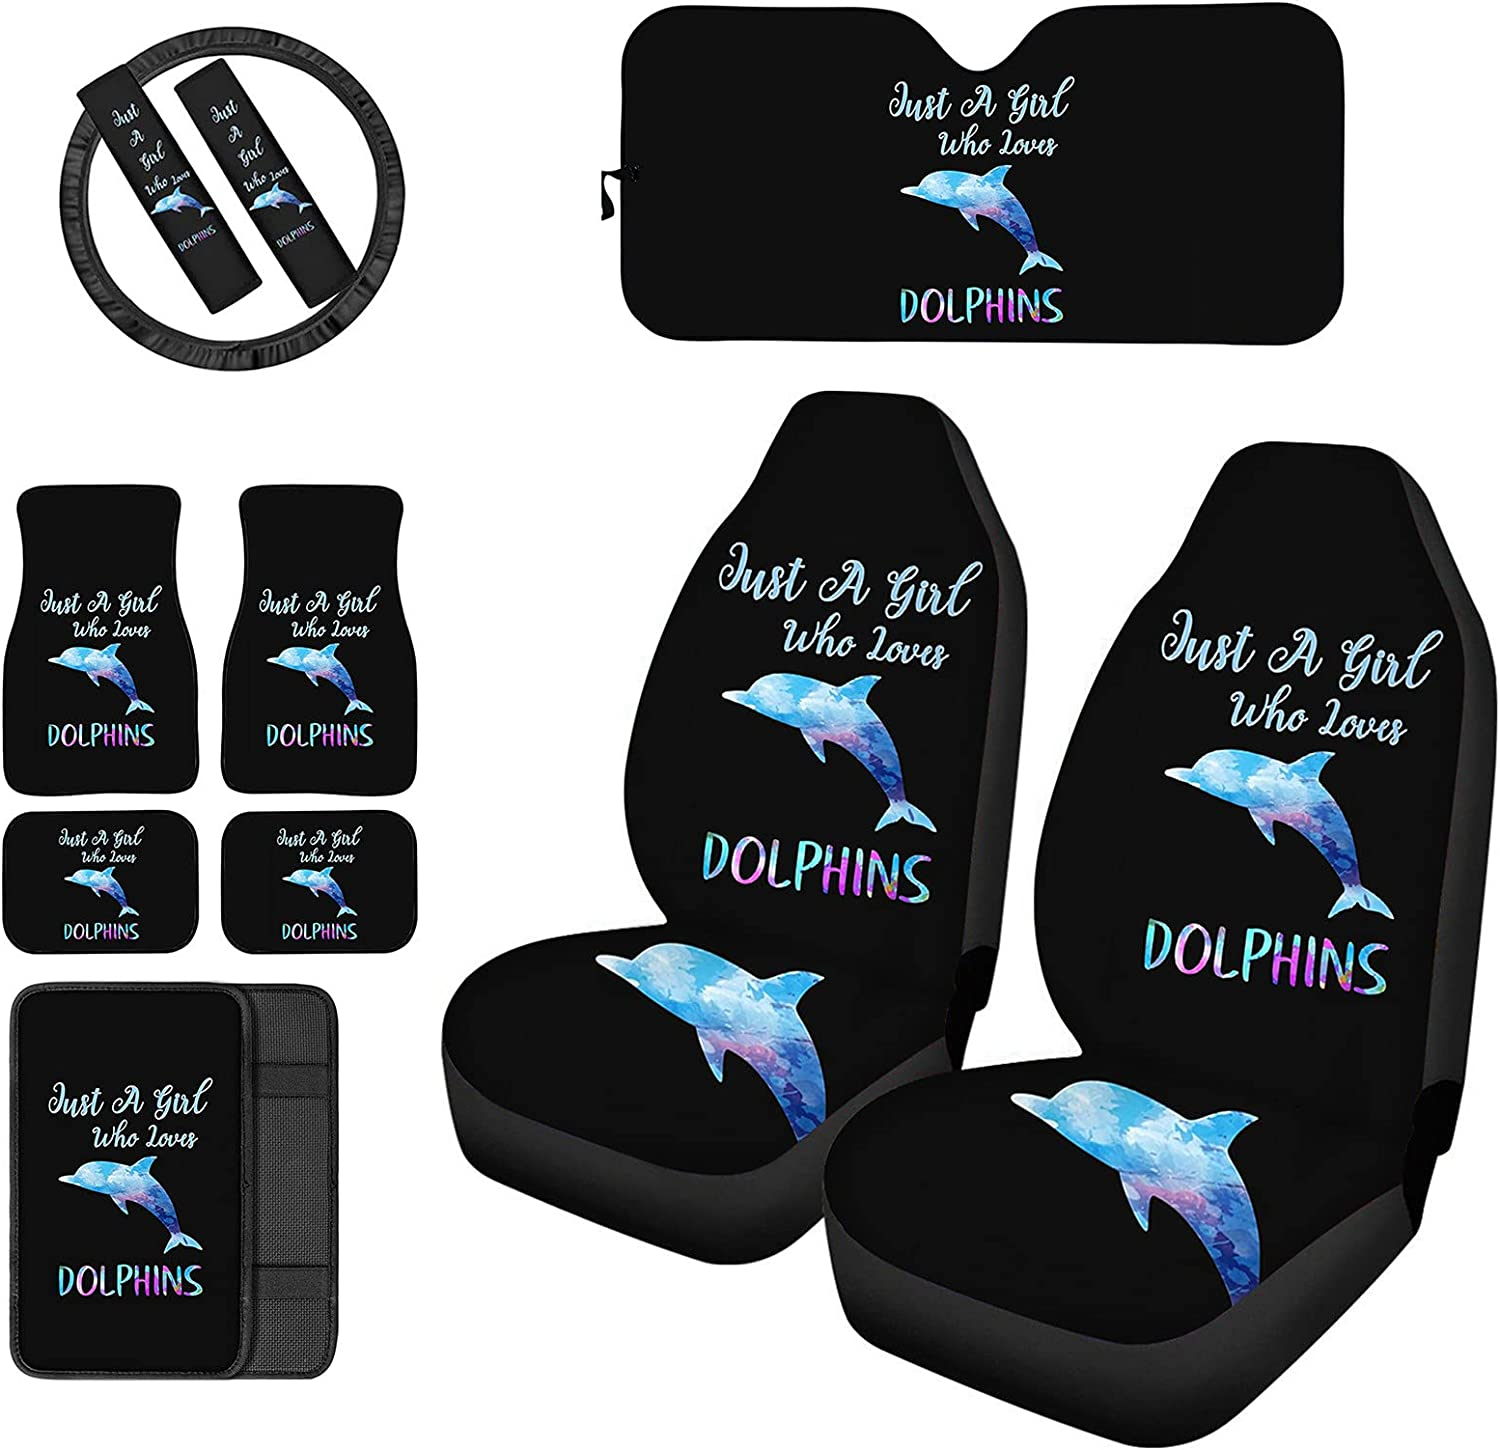 Frestree Just Bargain a Girl Who Loves Full Seat Car Dolphins Phoenix Mall Covers Set